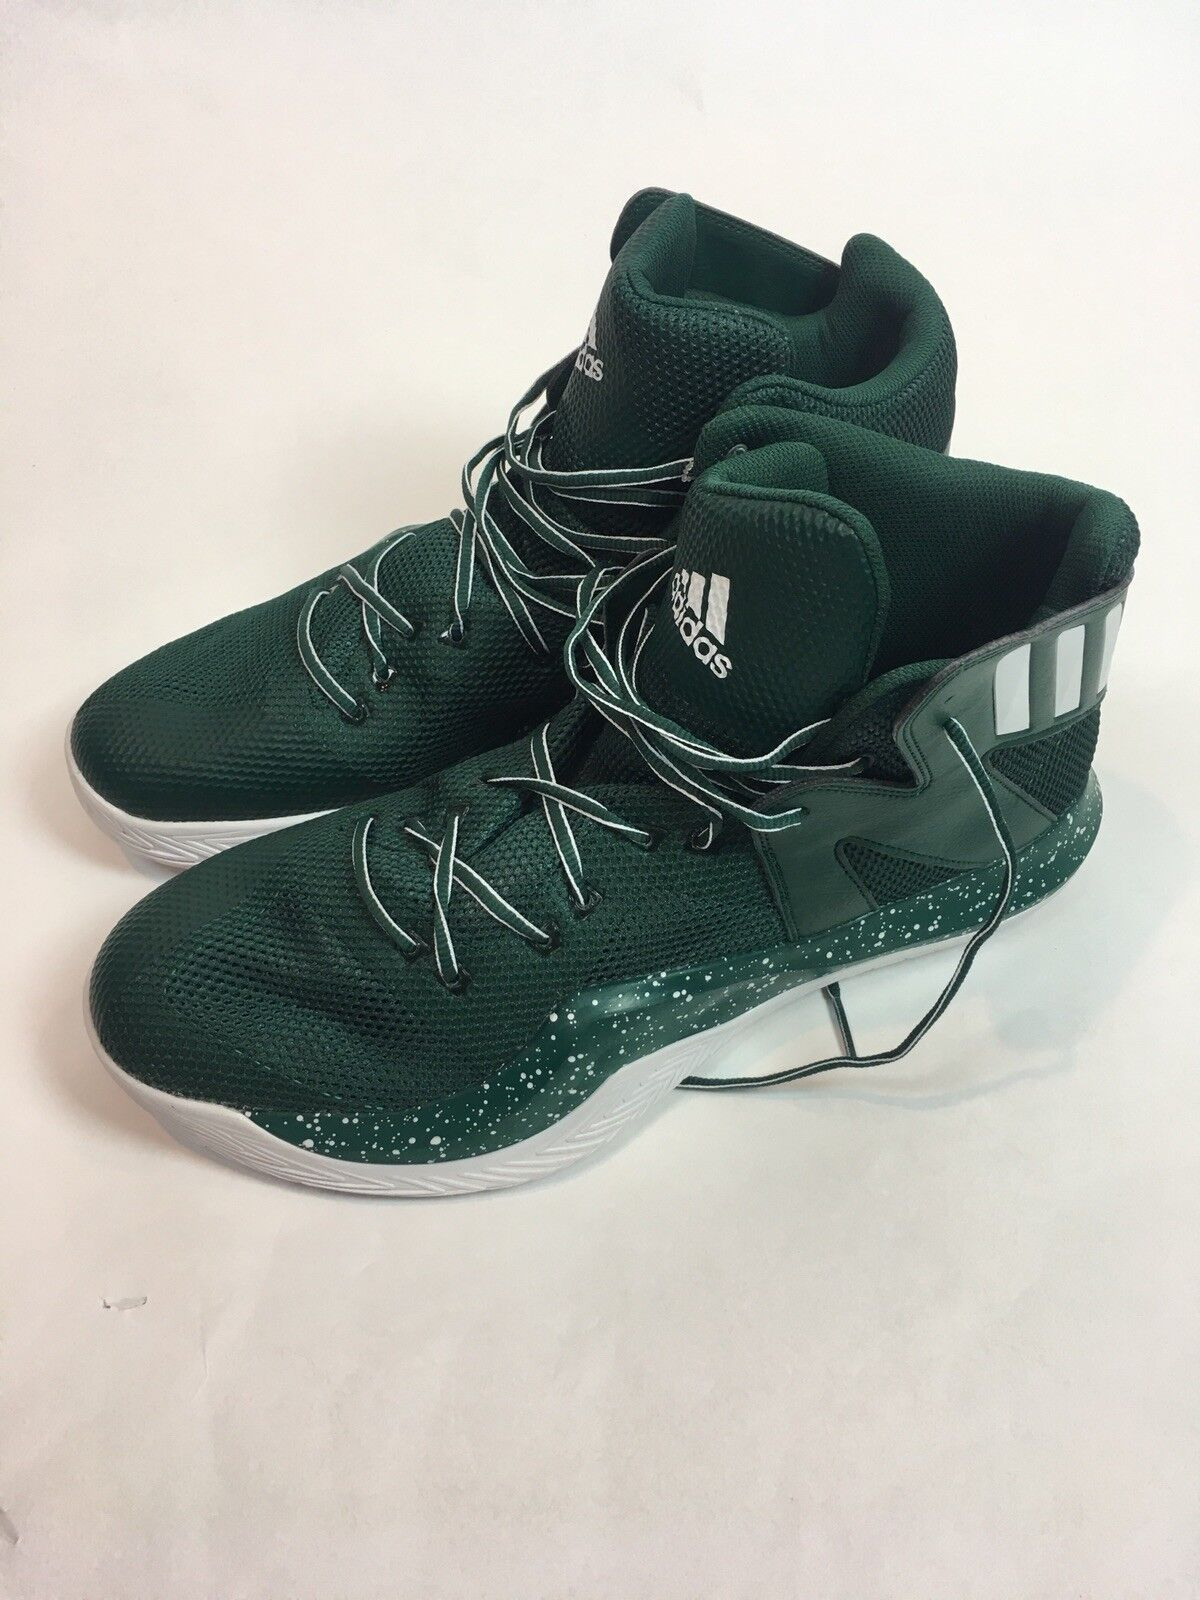 Men's Adidas Basketball Shoes - Comfortable Wild casual shoes